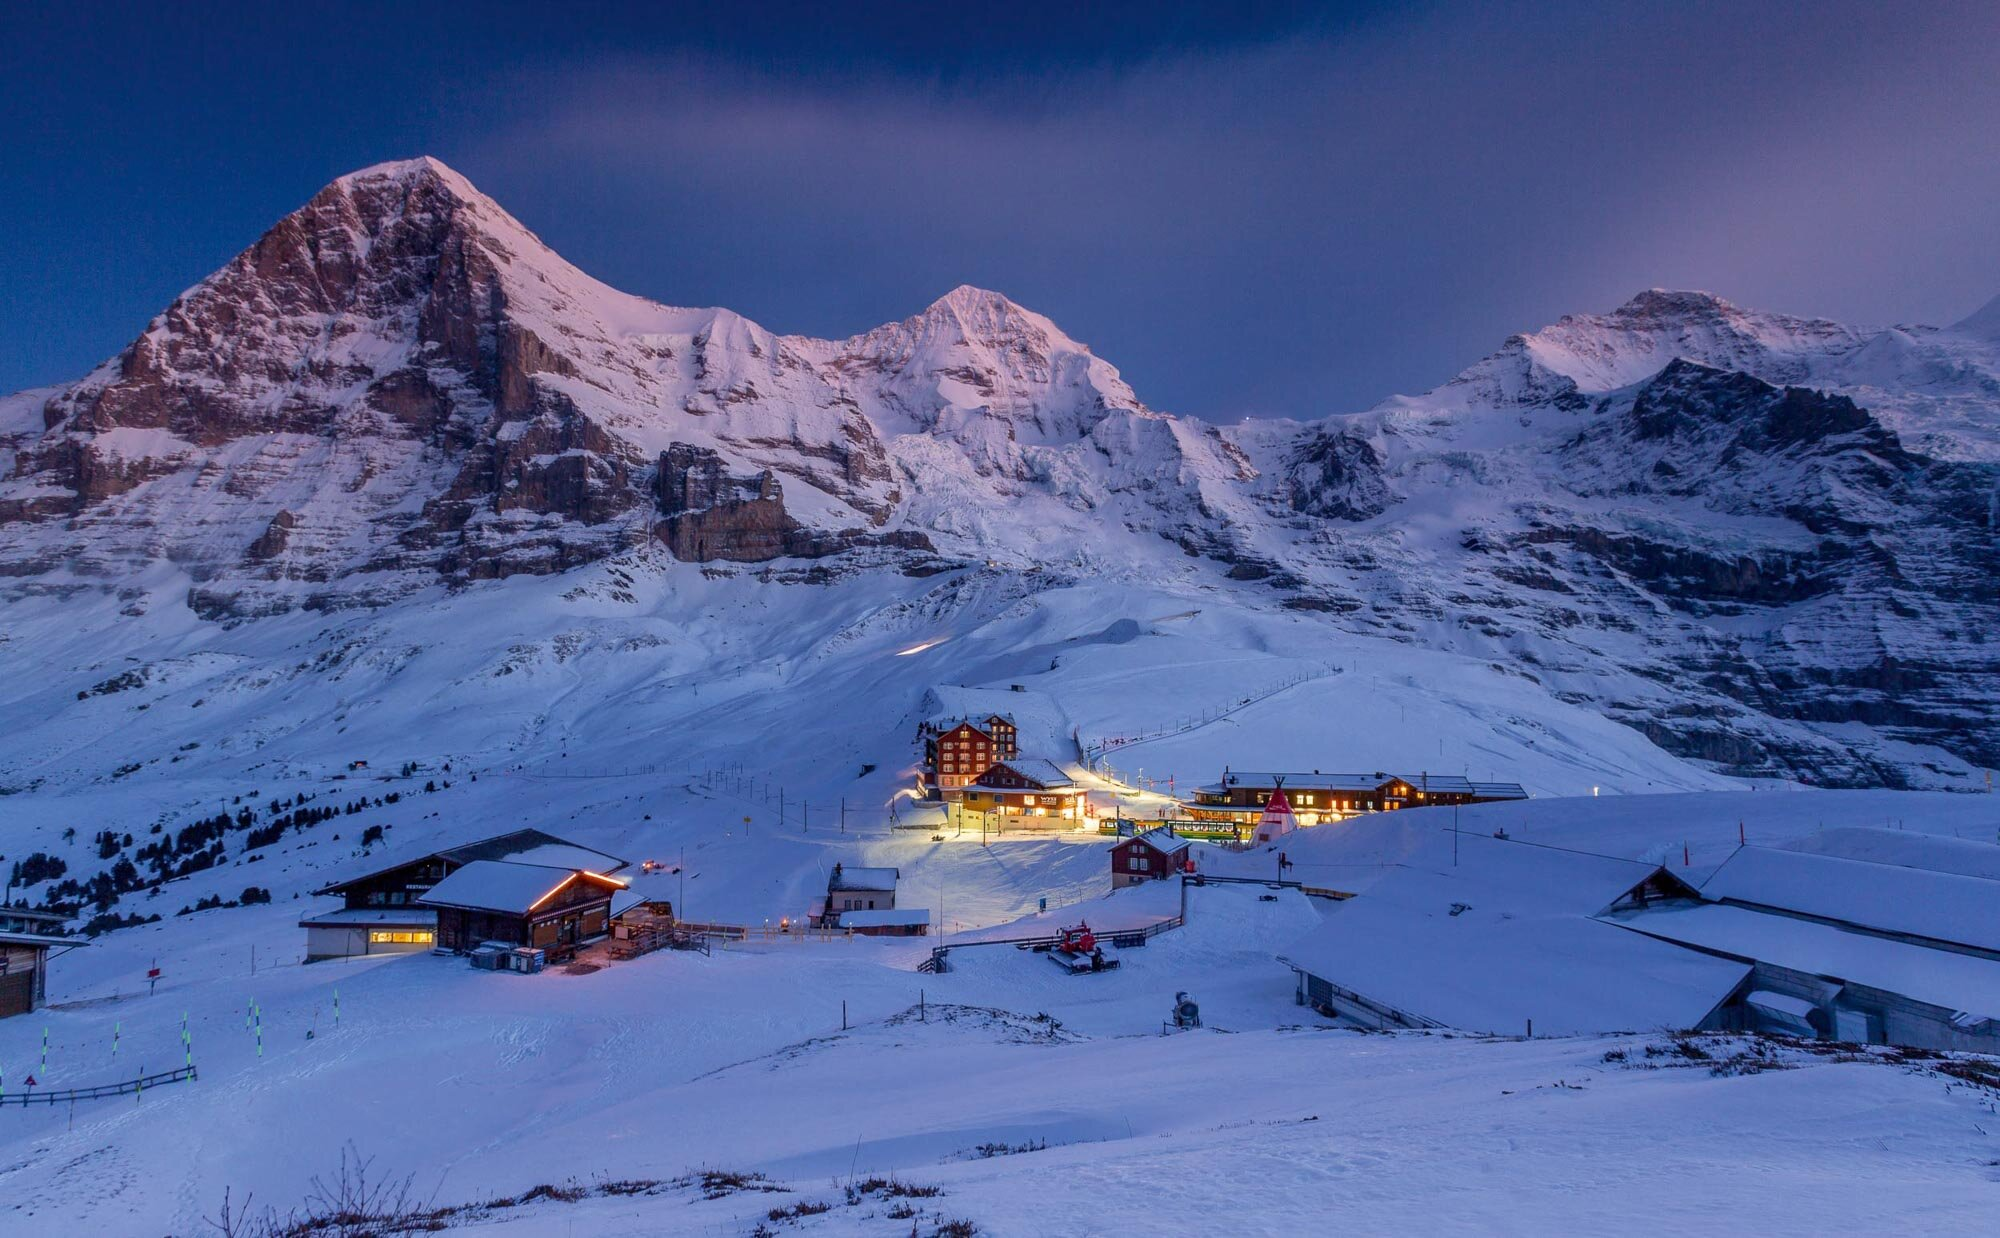 Evening atmosphere over the Kleine Scheidegg with views of the Eiger, Moench and Jungfrau above  Lauterbrunnen. Copyright by: Switzerland Tourism